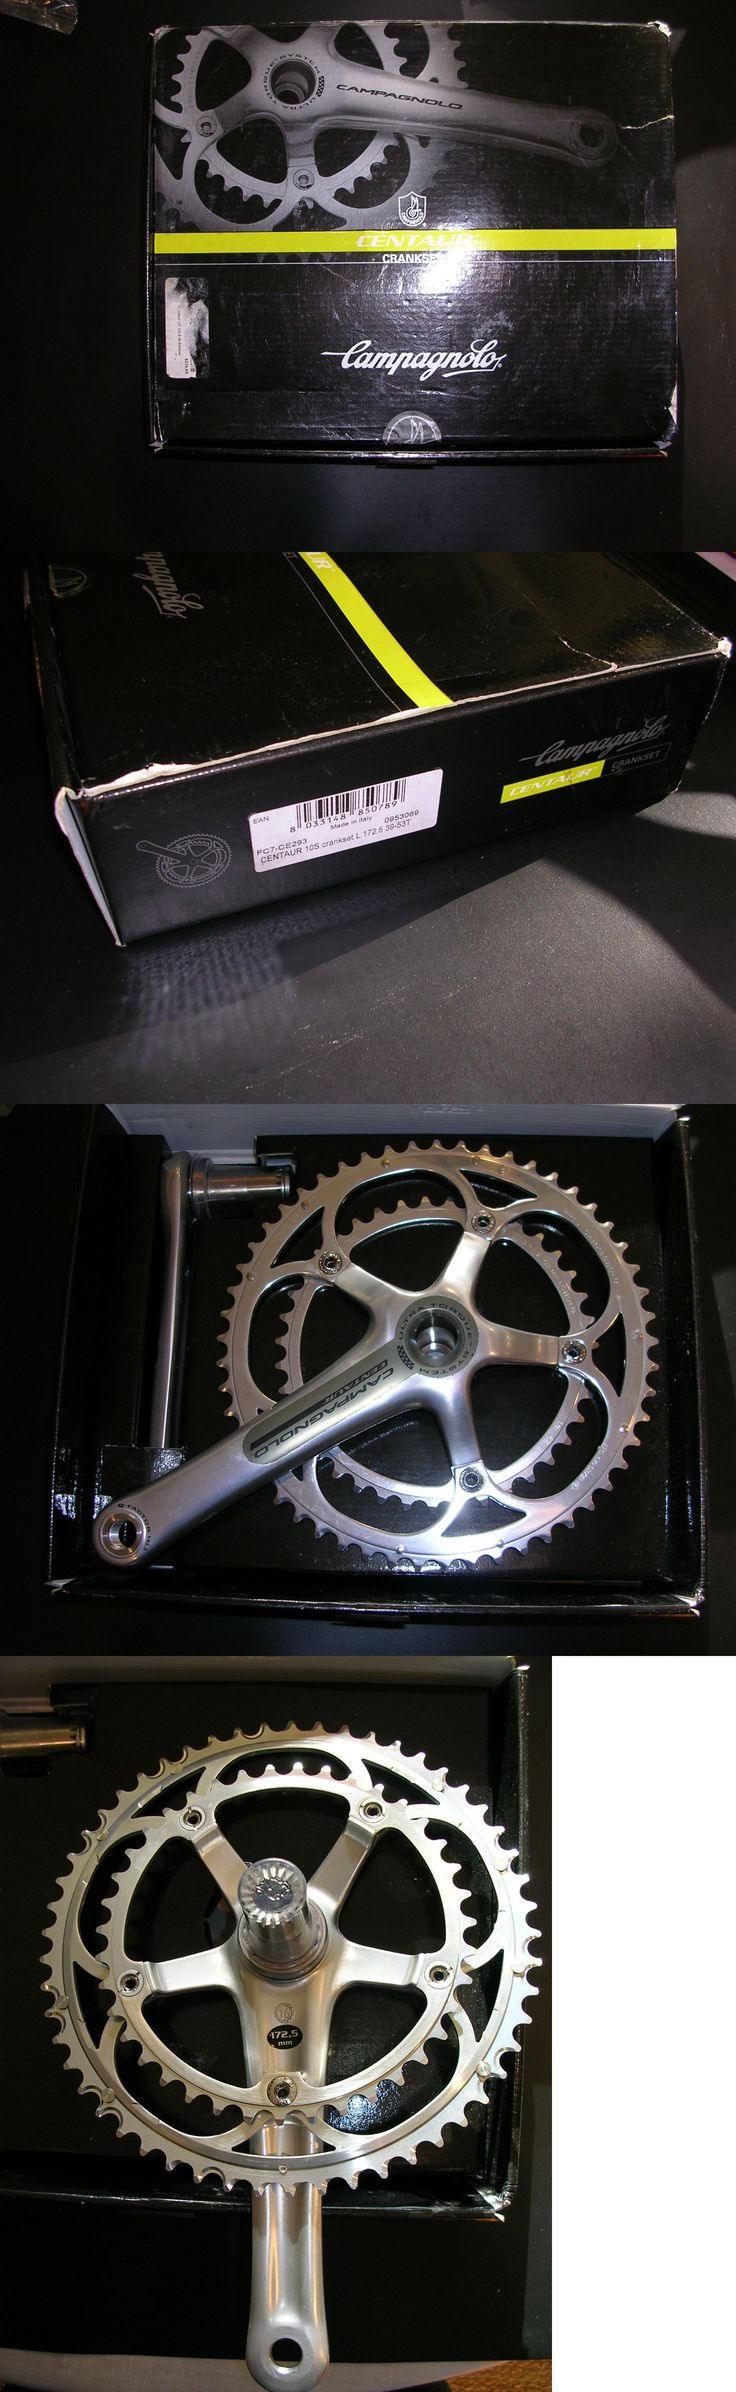 Cranksets 109118: New Campagnolo Centaur Ultratorque 10 Spd Alloy Race Chainset 53-39 172.5 W Cups -> BUY IT NOW ONLY: $99 on eBay!